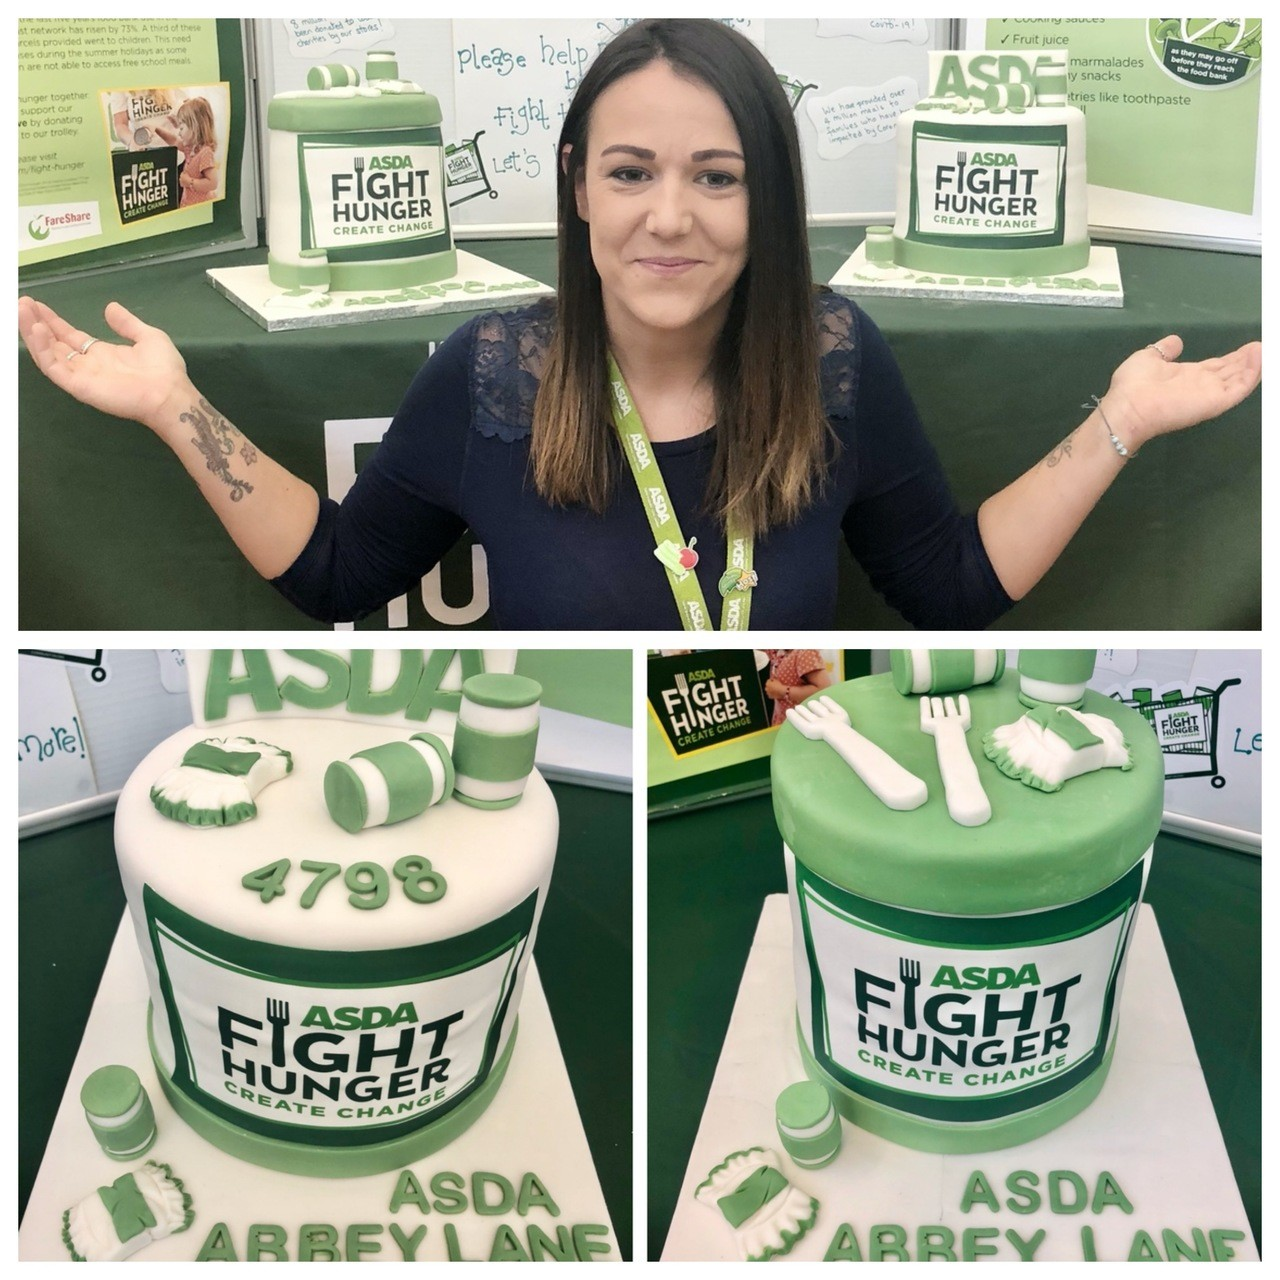 Karla's cake bake raises money for Action Homeless foodbank | Asda Leicester Abbey Lane